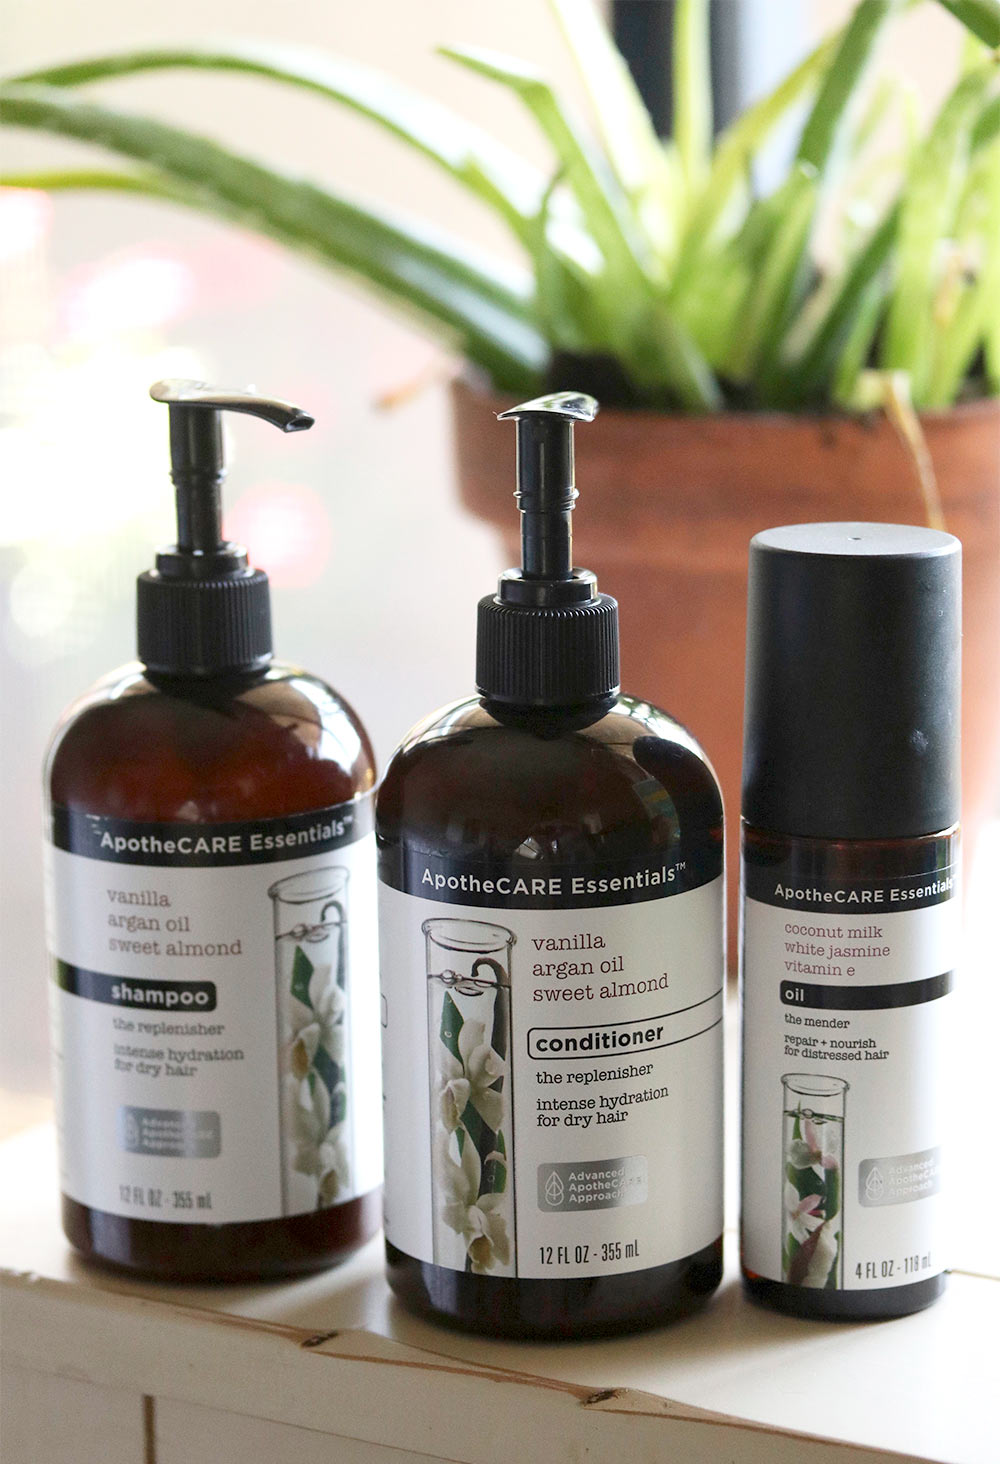 apothecare essentials